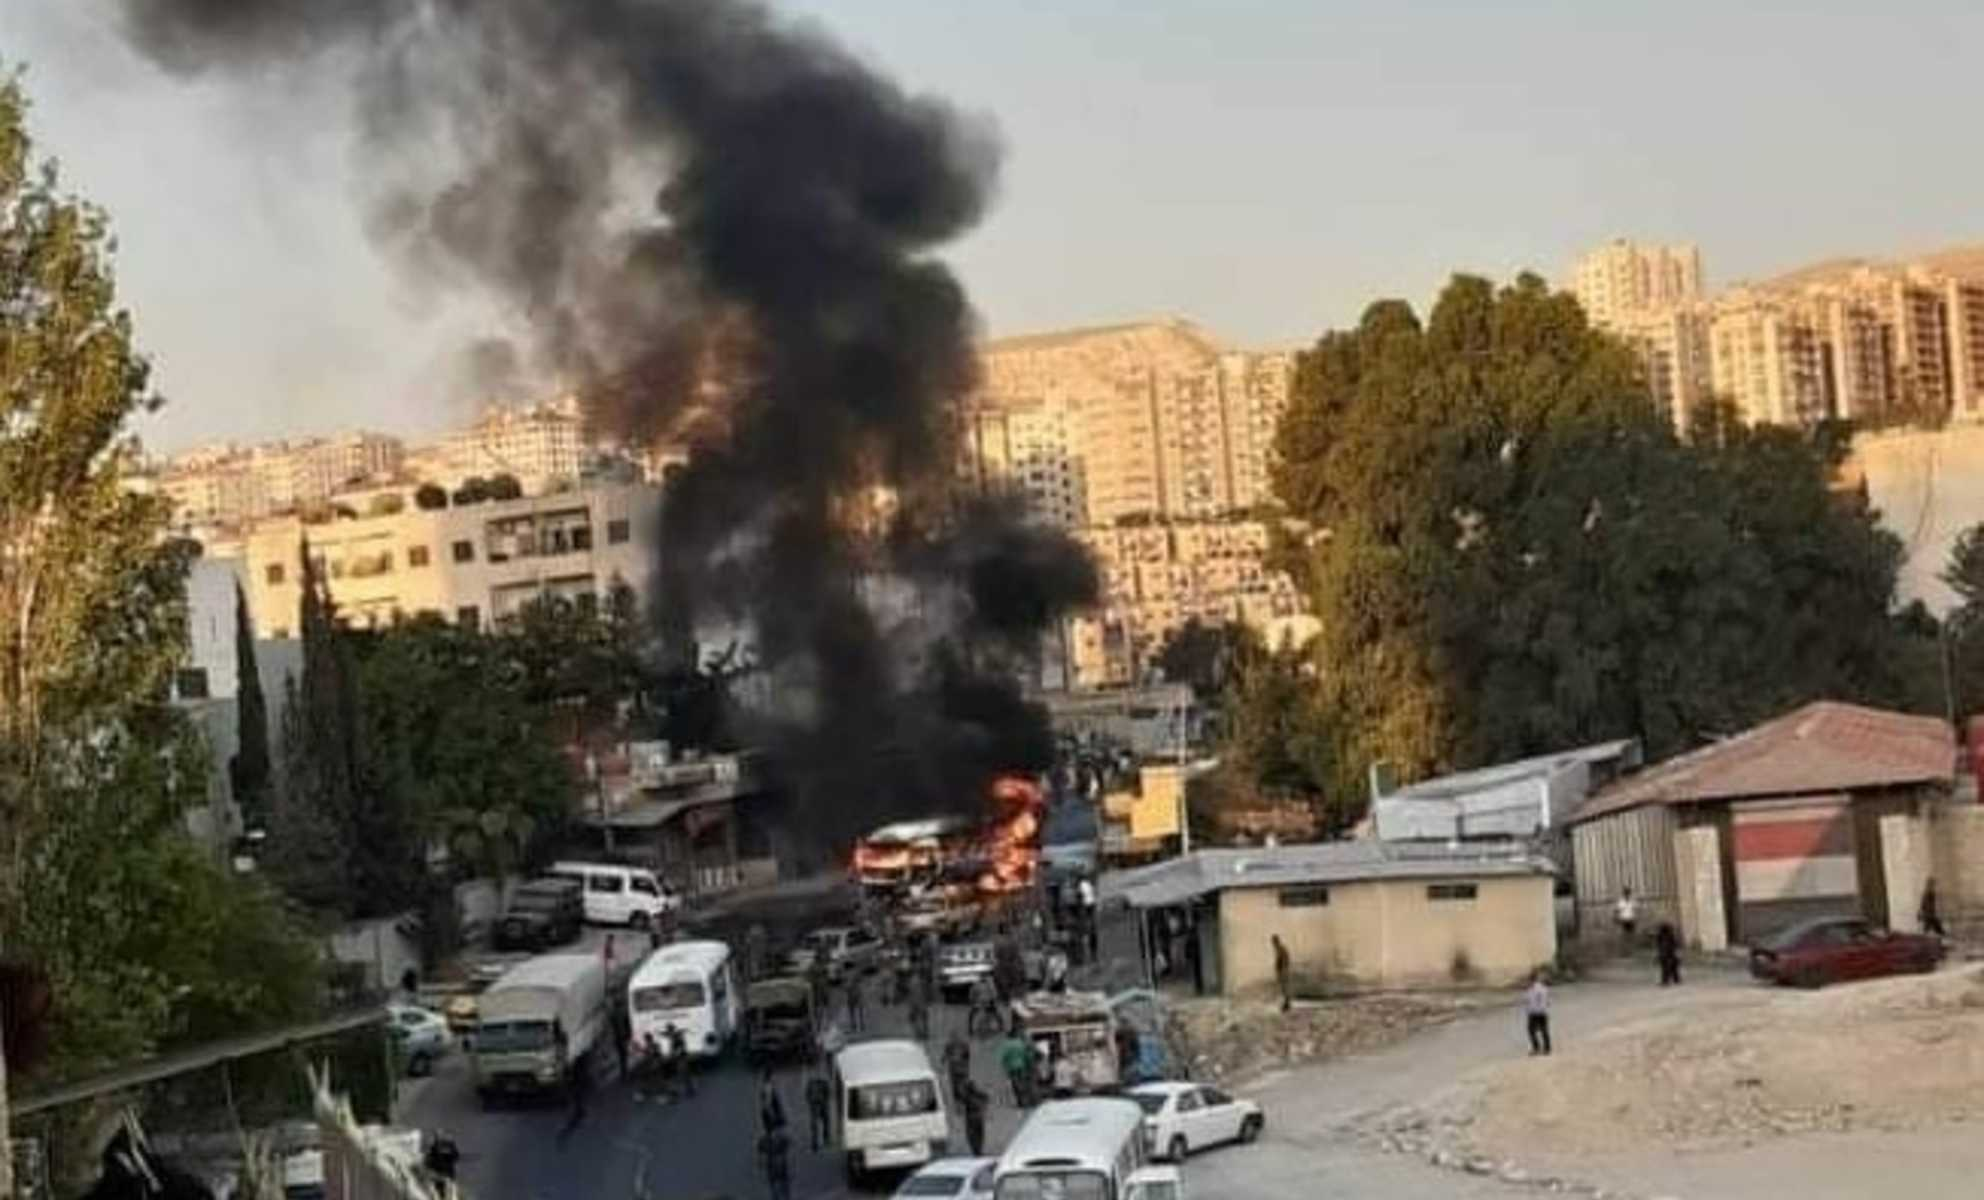 Dead and wounded regime forces in an ammunition depot explosion in Hama